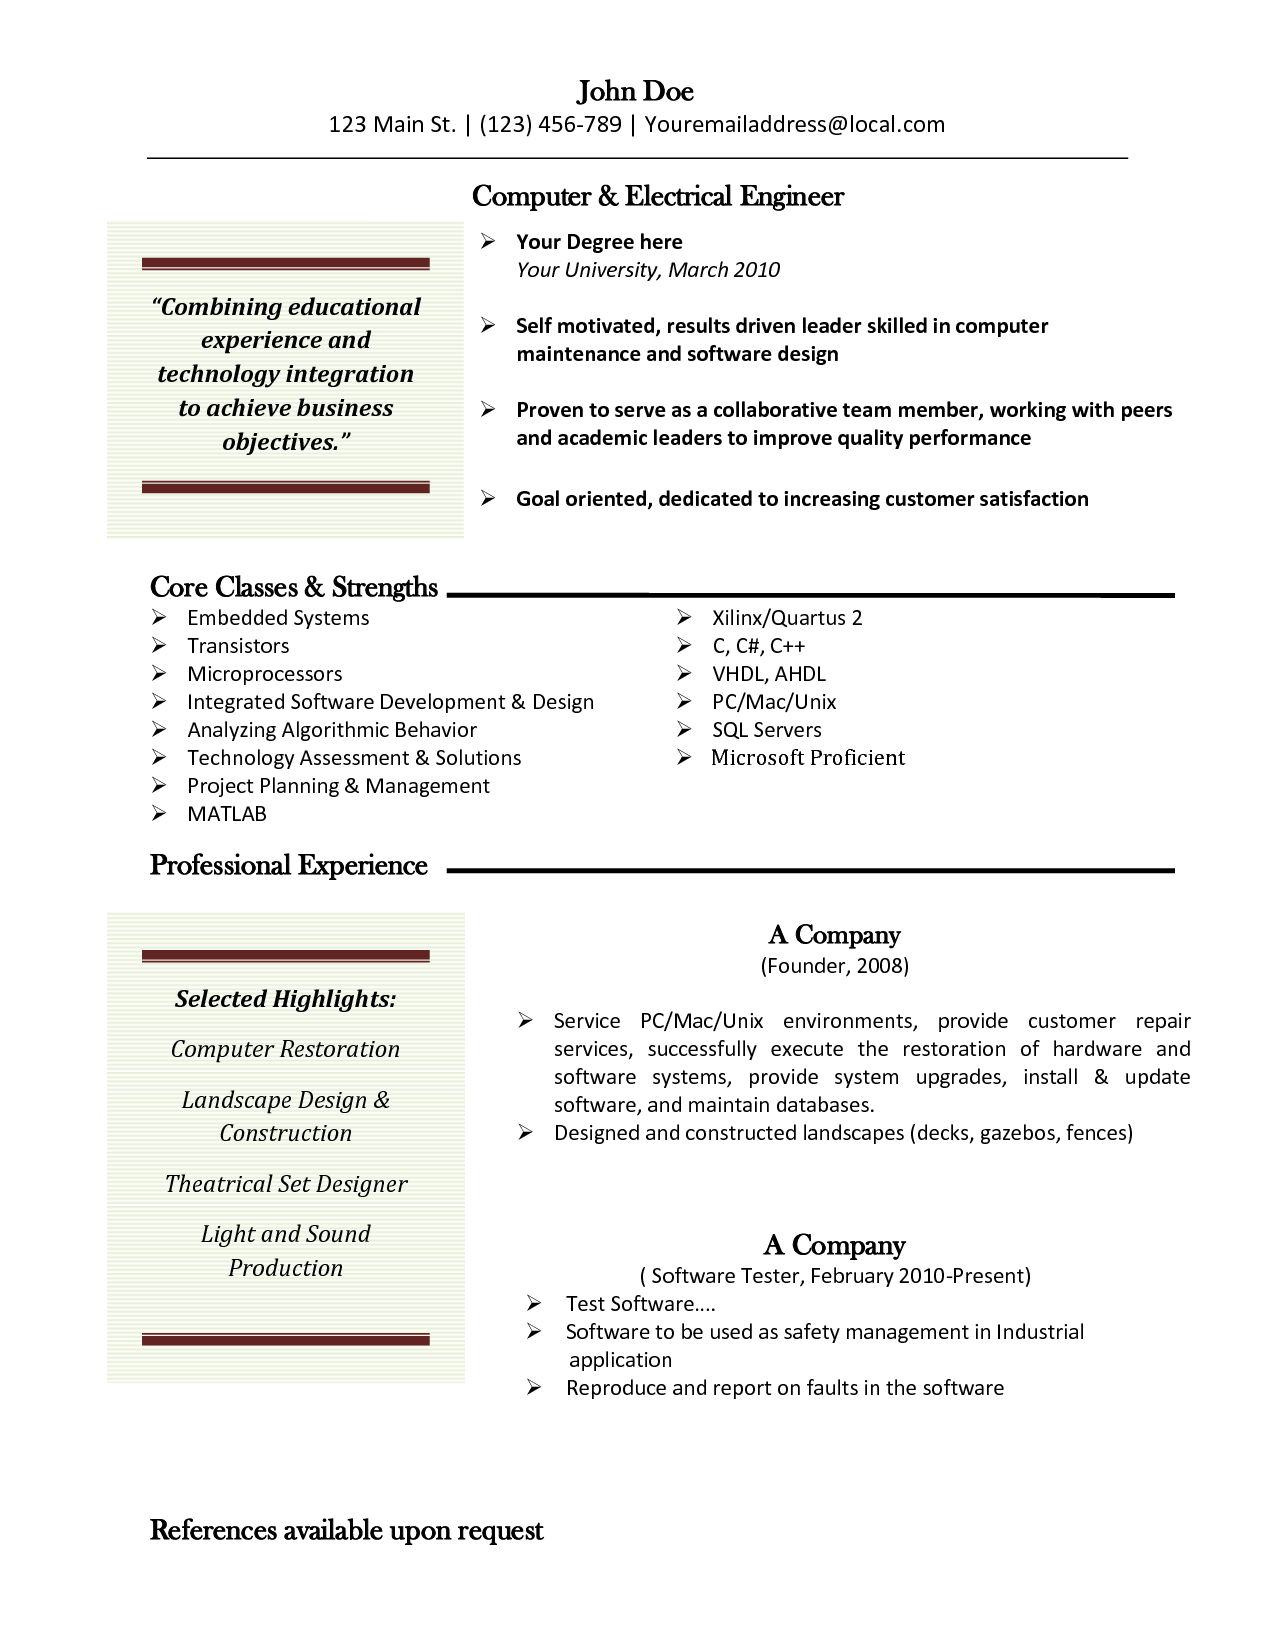 Free resume templates for mac cqjykibig 12751650 cv free resume templates for mac best templatefree resume templates cover letter examples yelopaper Images